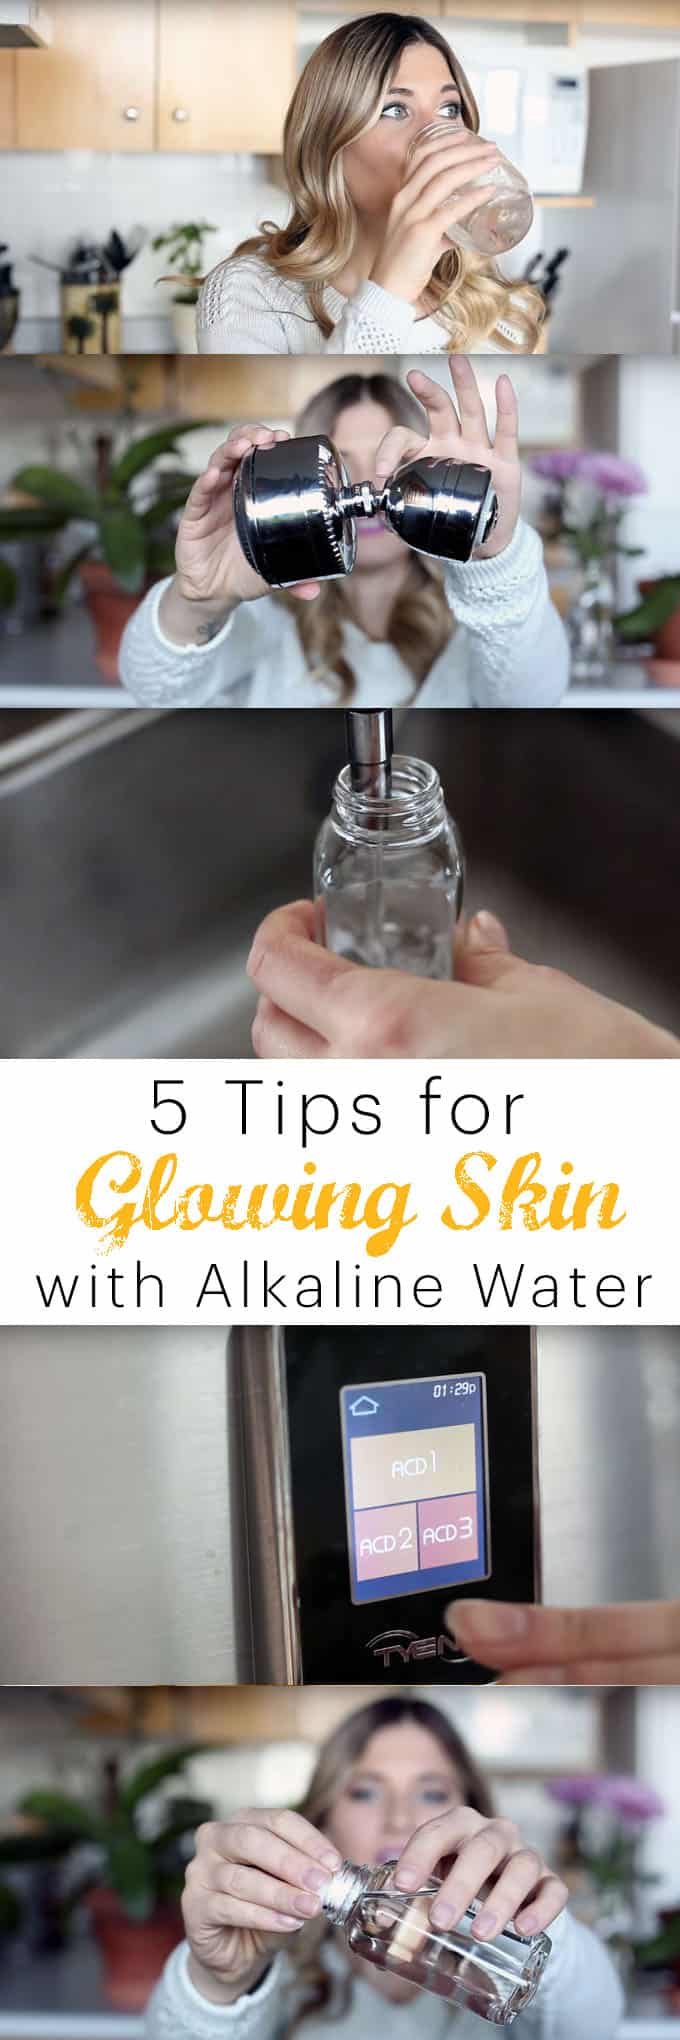 How to clean your skin naturally with alkaline water